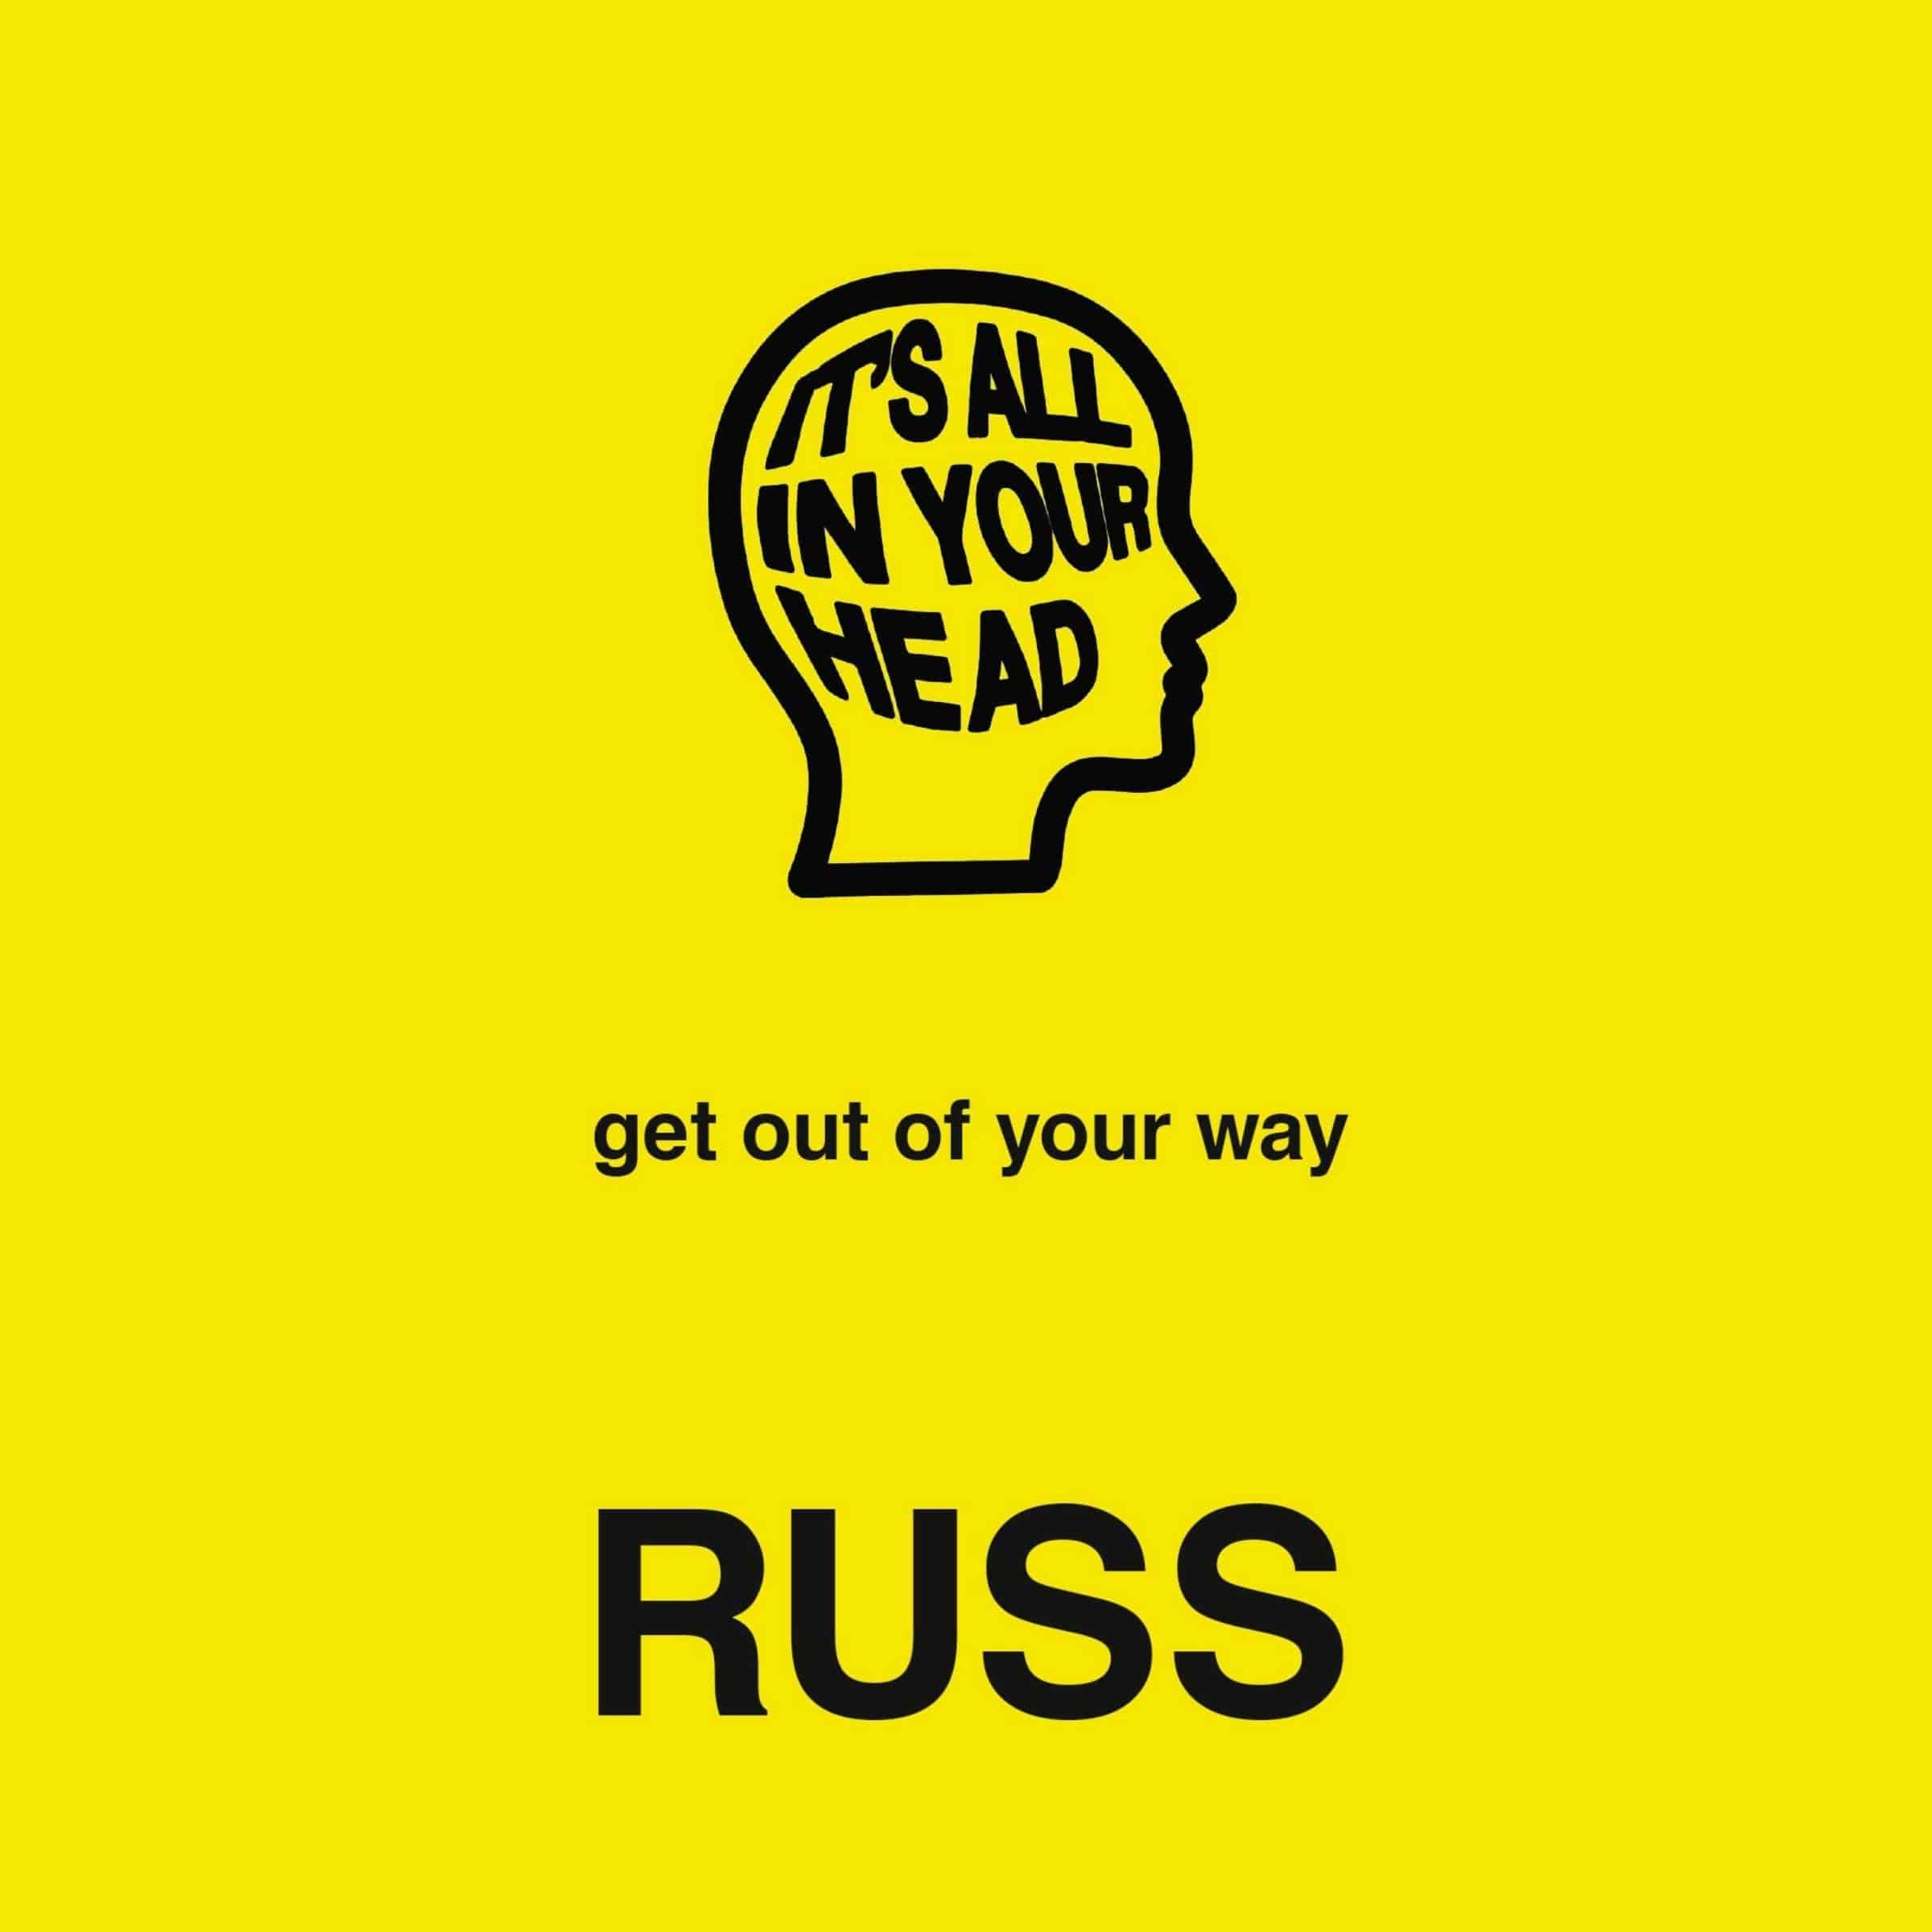 It's all in your head by Russ - Self-help books